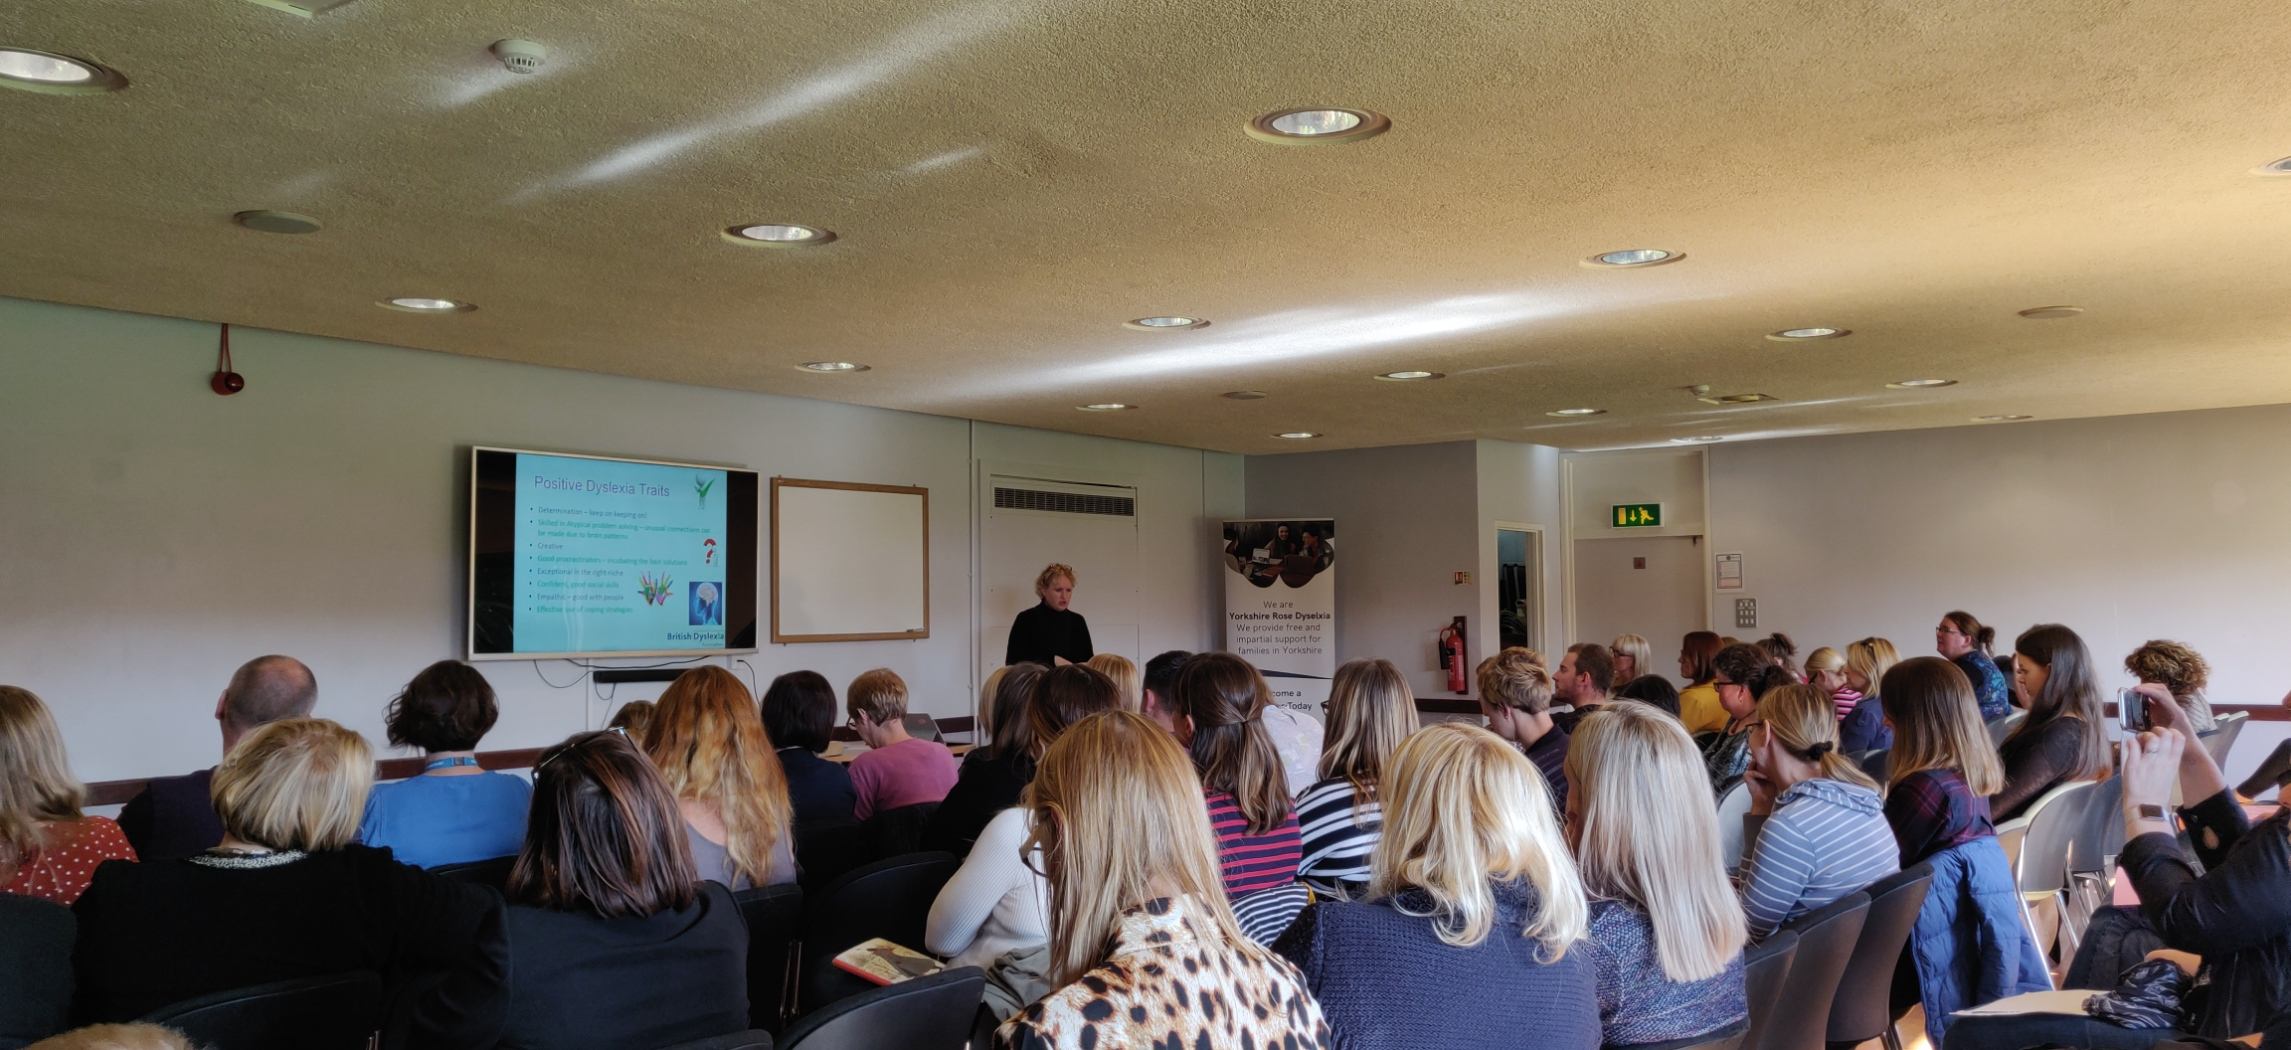 CEO of the BDA addressing parents of dyslexic children at the BDA Parent Roadshow, Pudsey, UK